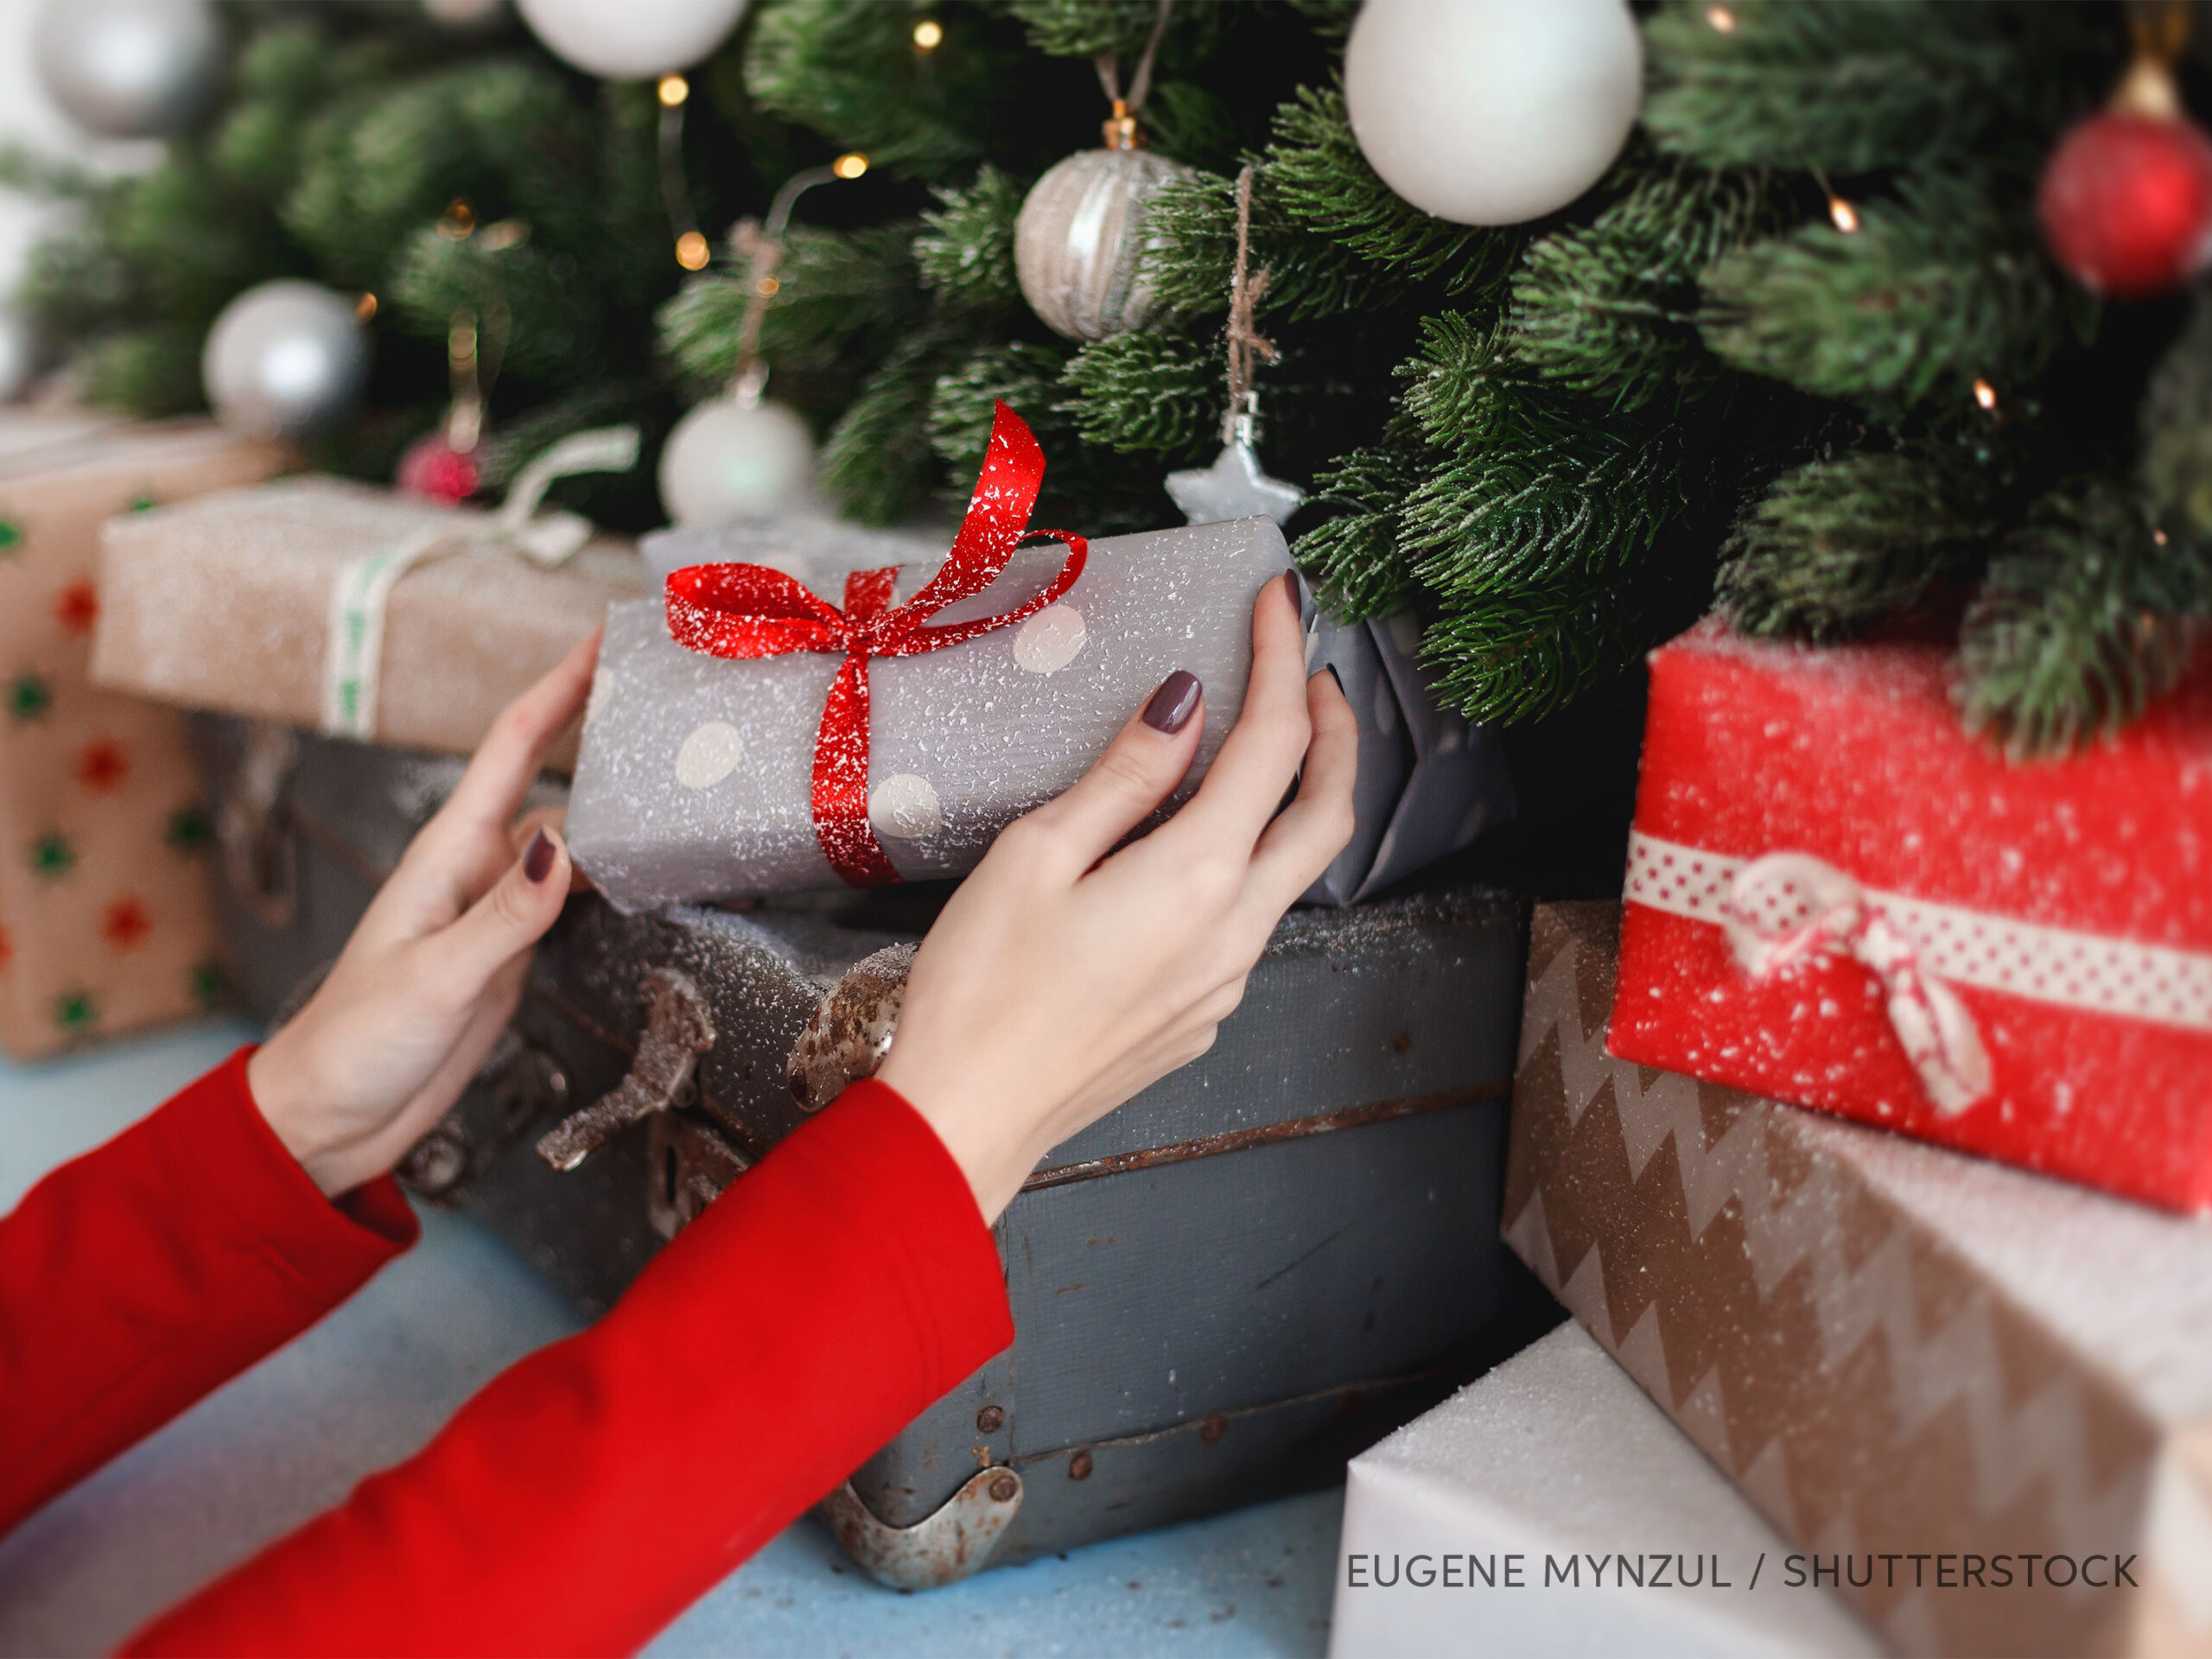 Presents under a Christmas tree, photo